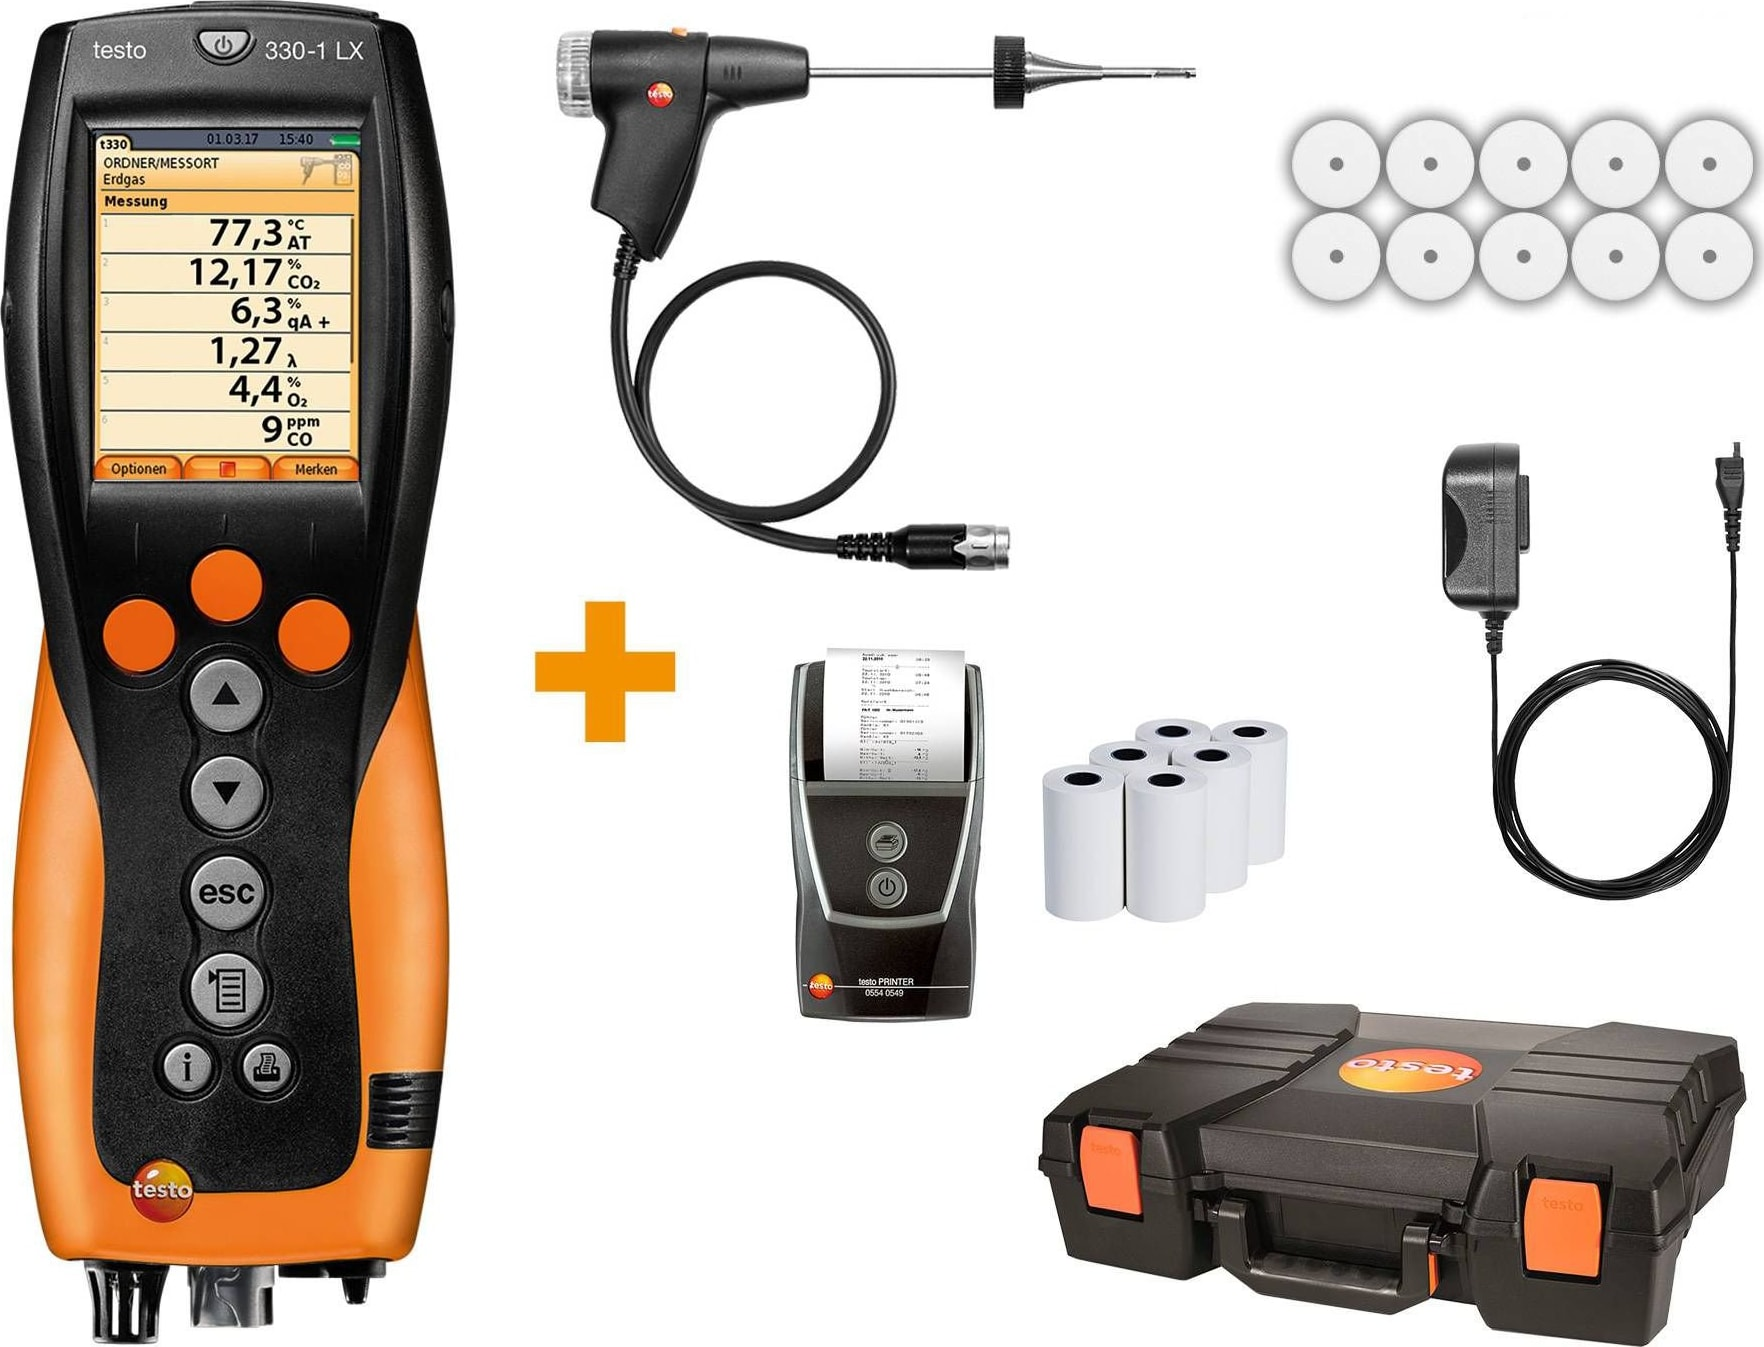 Testo 330-1 LX KIT 2 - Commercial / Light Industrial Combustion Analyzer Kit